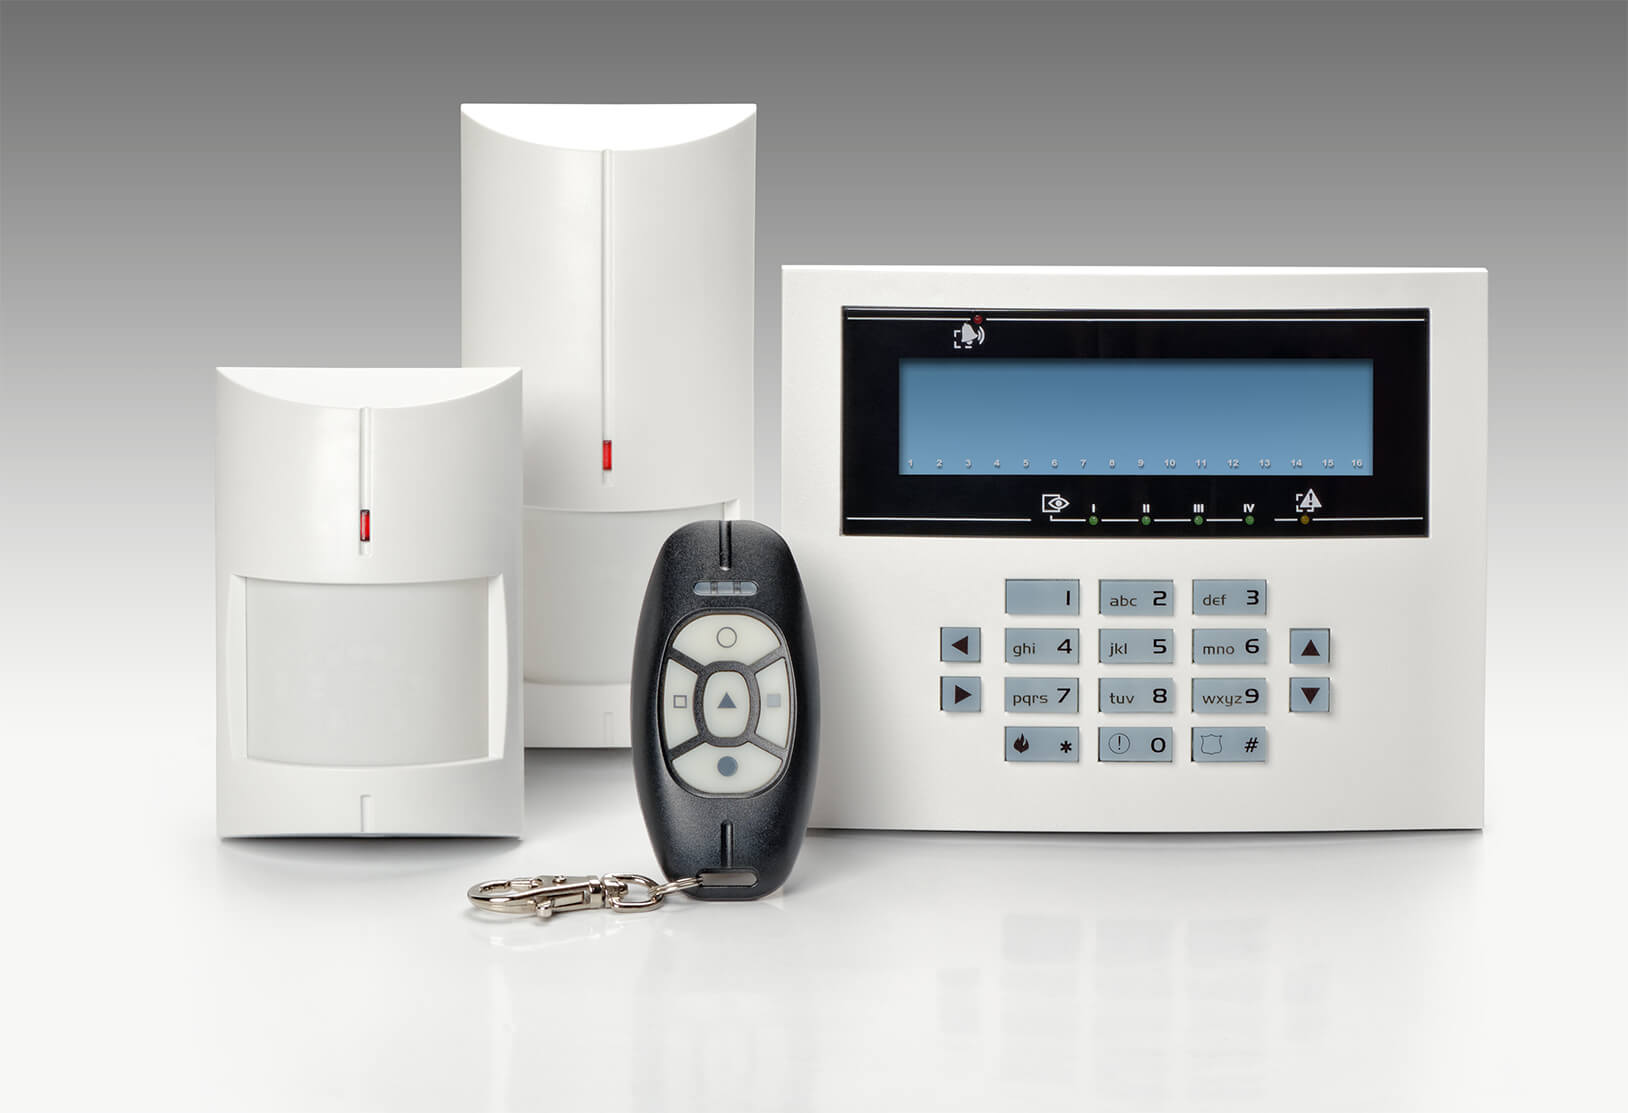 Business & Residential NSI / NACOSS Approved Burglar Alarms In Mottingham SE9 - Local Mottingham SE9 security company - Call 02078872244 - Dedicated to Safety & Security. Companies, shops and homes ..